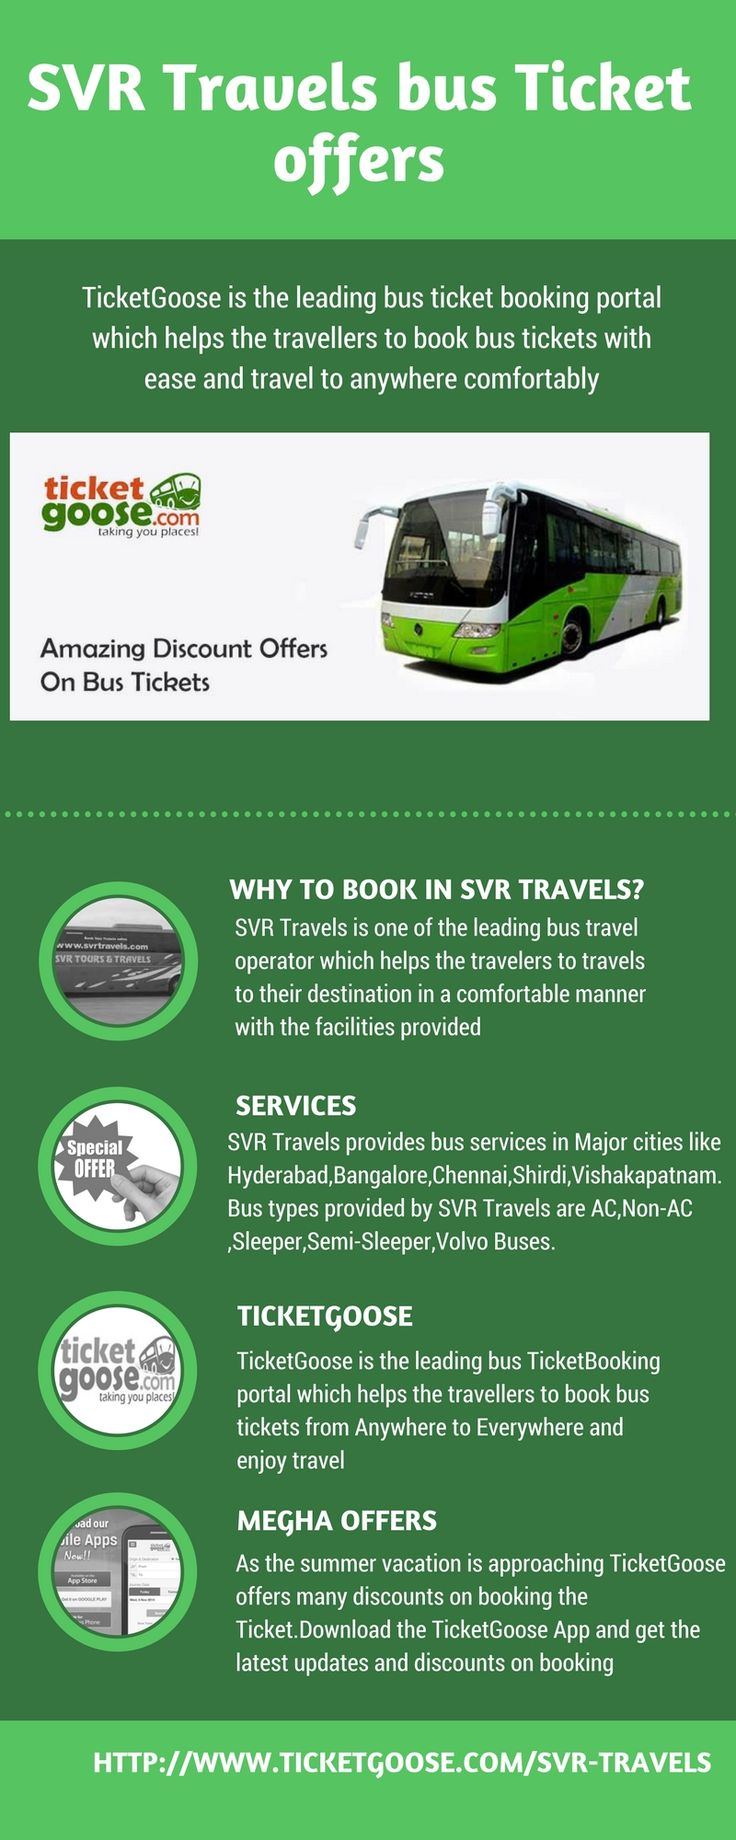 SVR Travels provides ticket booking to Vijayawada,Tirupati,Nellore,Bangalore routes. Book the tickets at ticket goose for the SVR Travels with low fares  http://www.ticketgoose.com/svr-travels